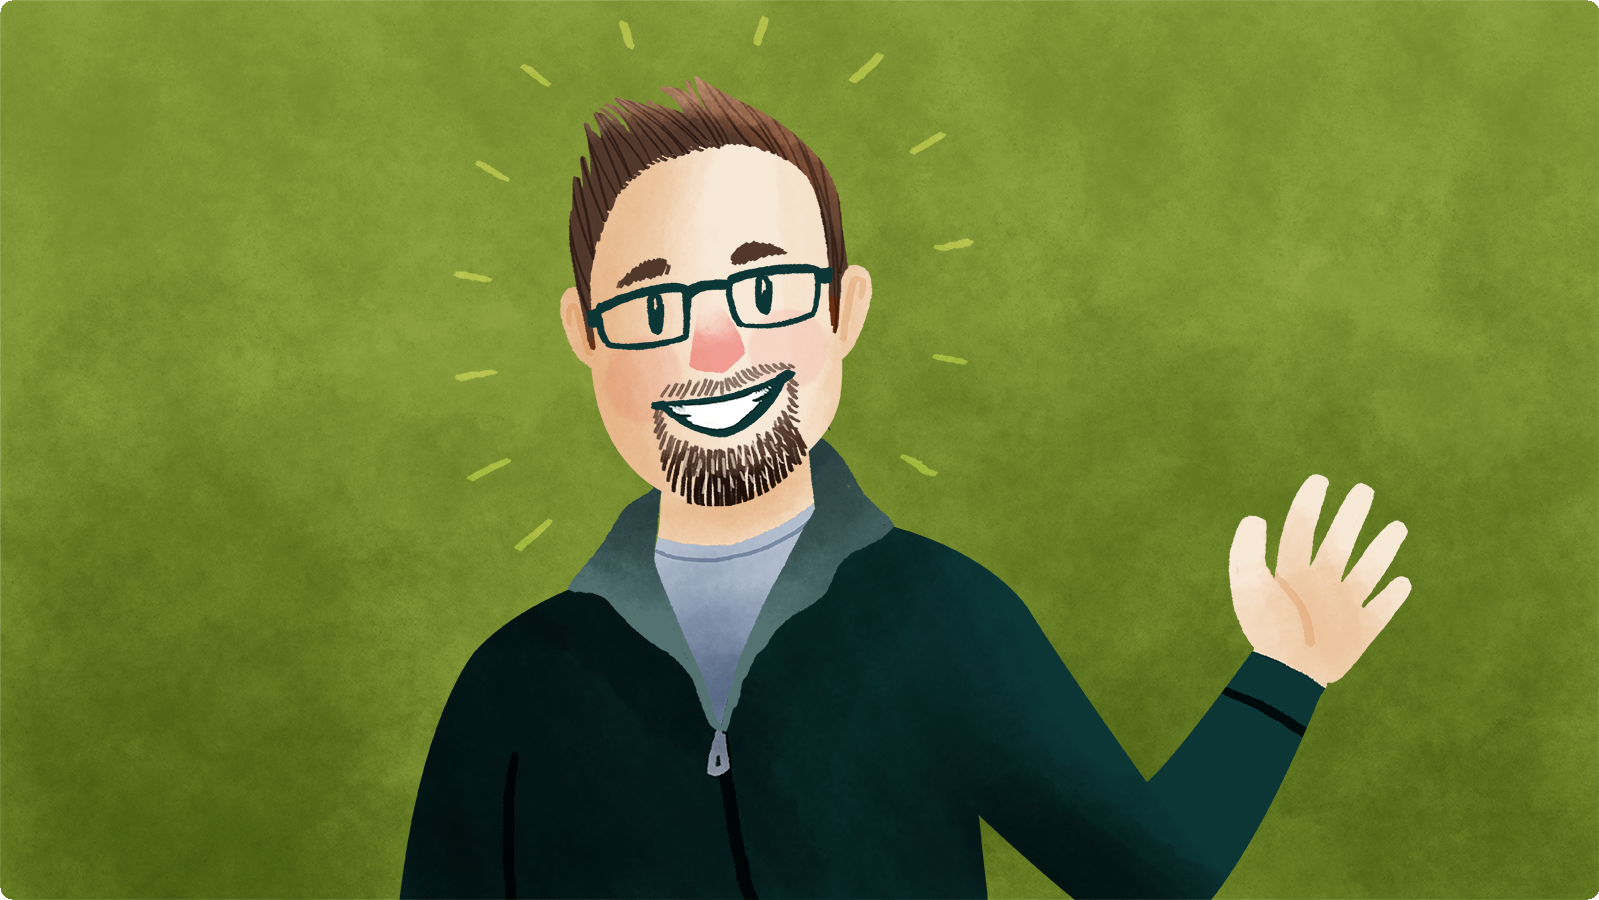 kylepace-illustration-rounded.png